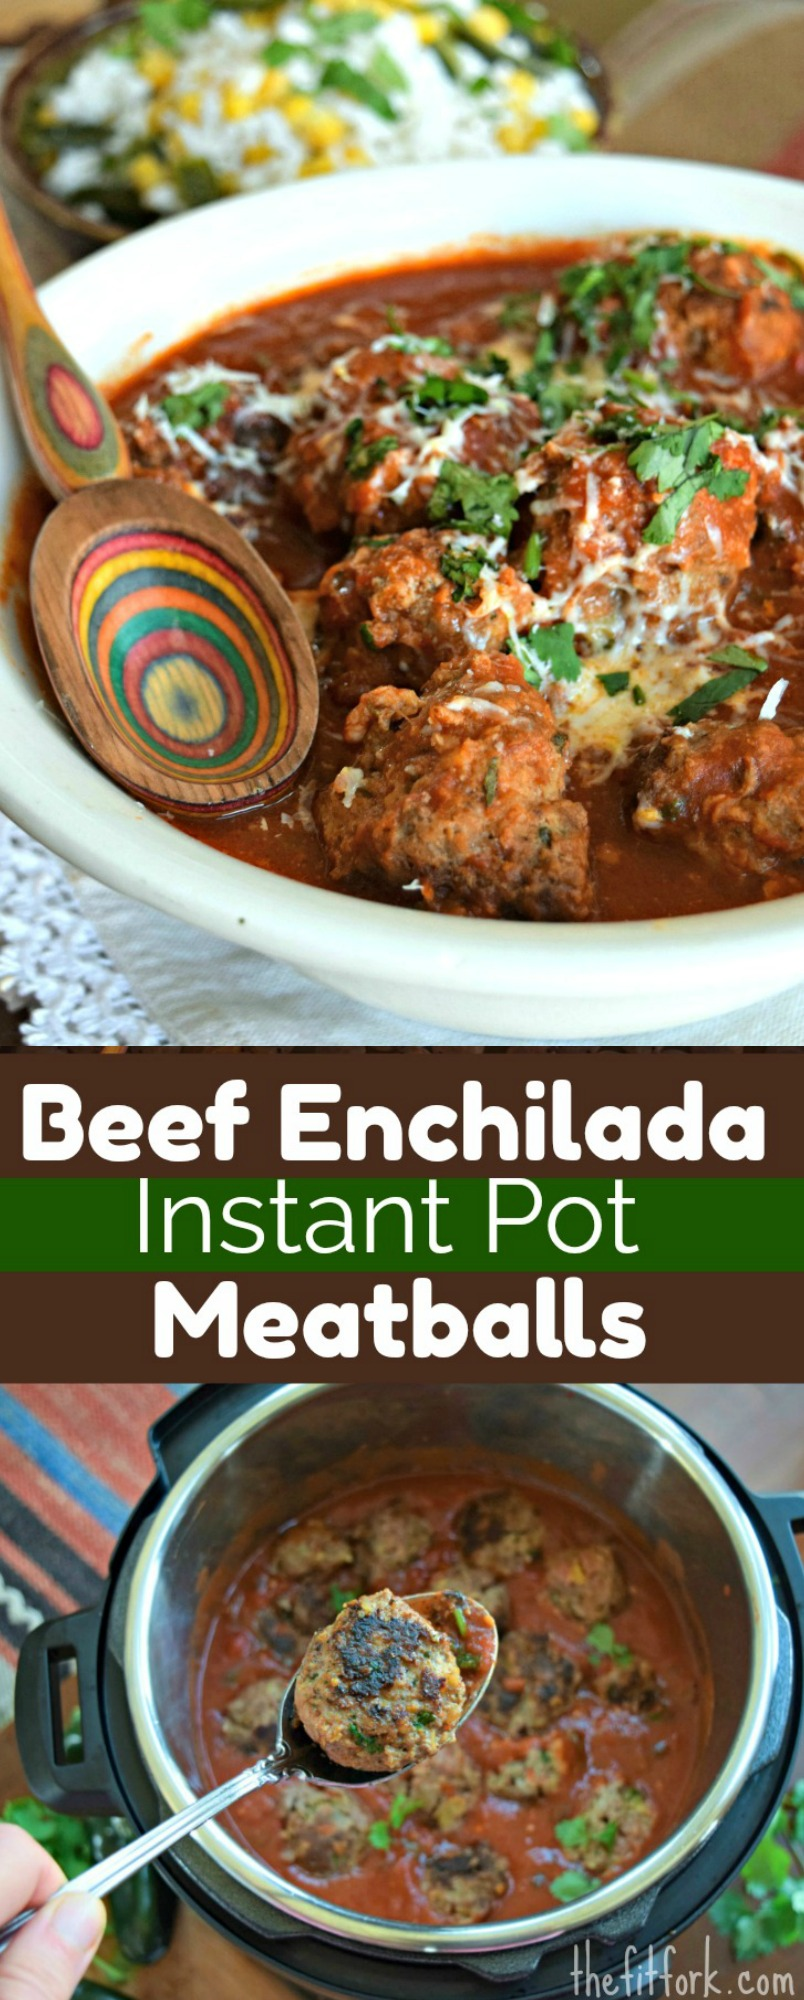 Beef Enchilada Instant Pot Meatballs taste like you've slow-simmered all day, but actually only 40 minutes prep to dinner plate! Also great as an appetizer.